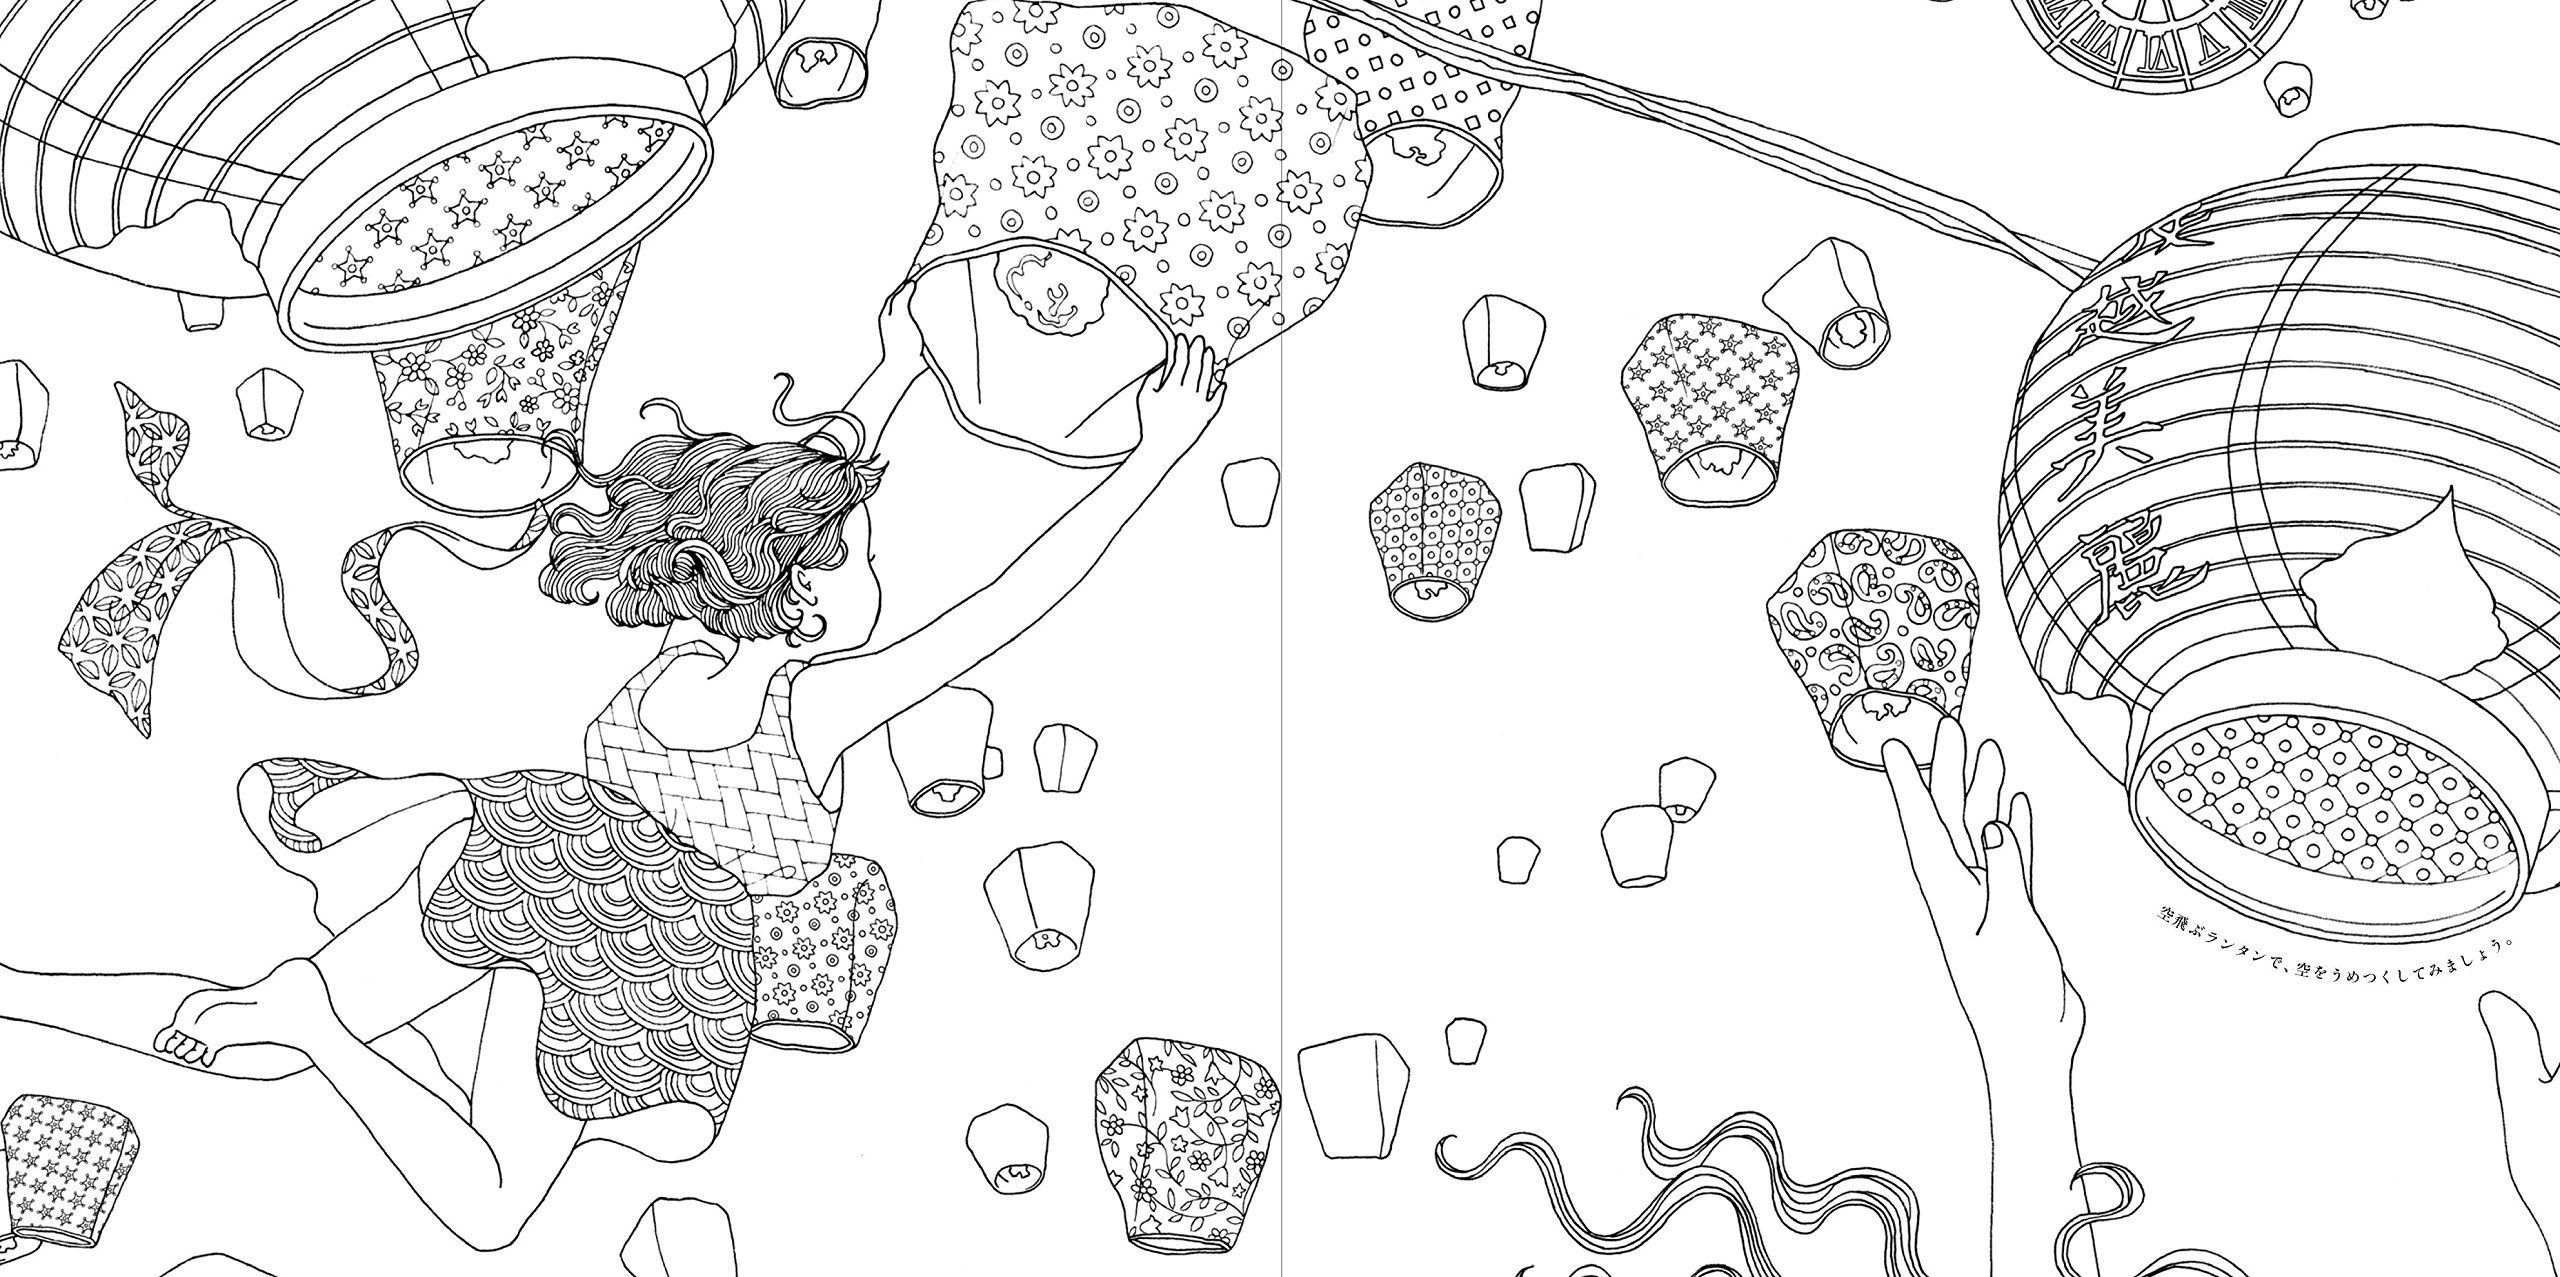 Daria Song The Time Garden | coloring for adults ...